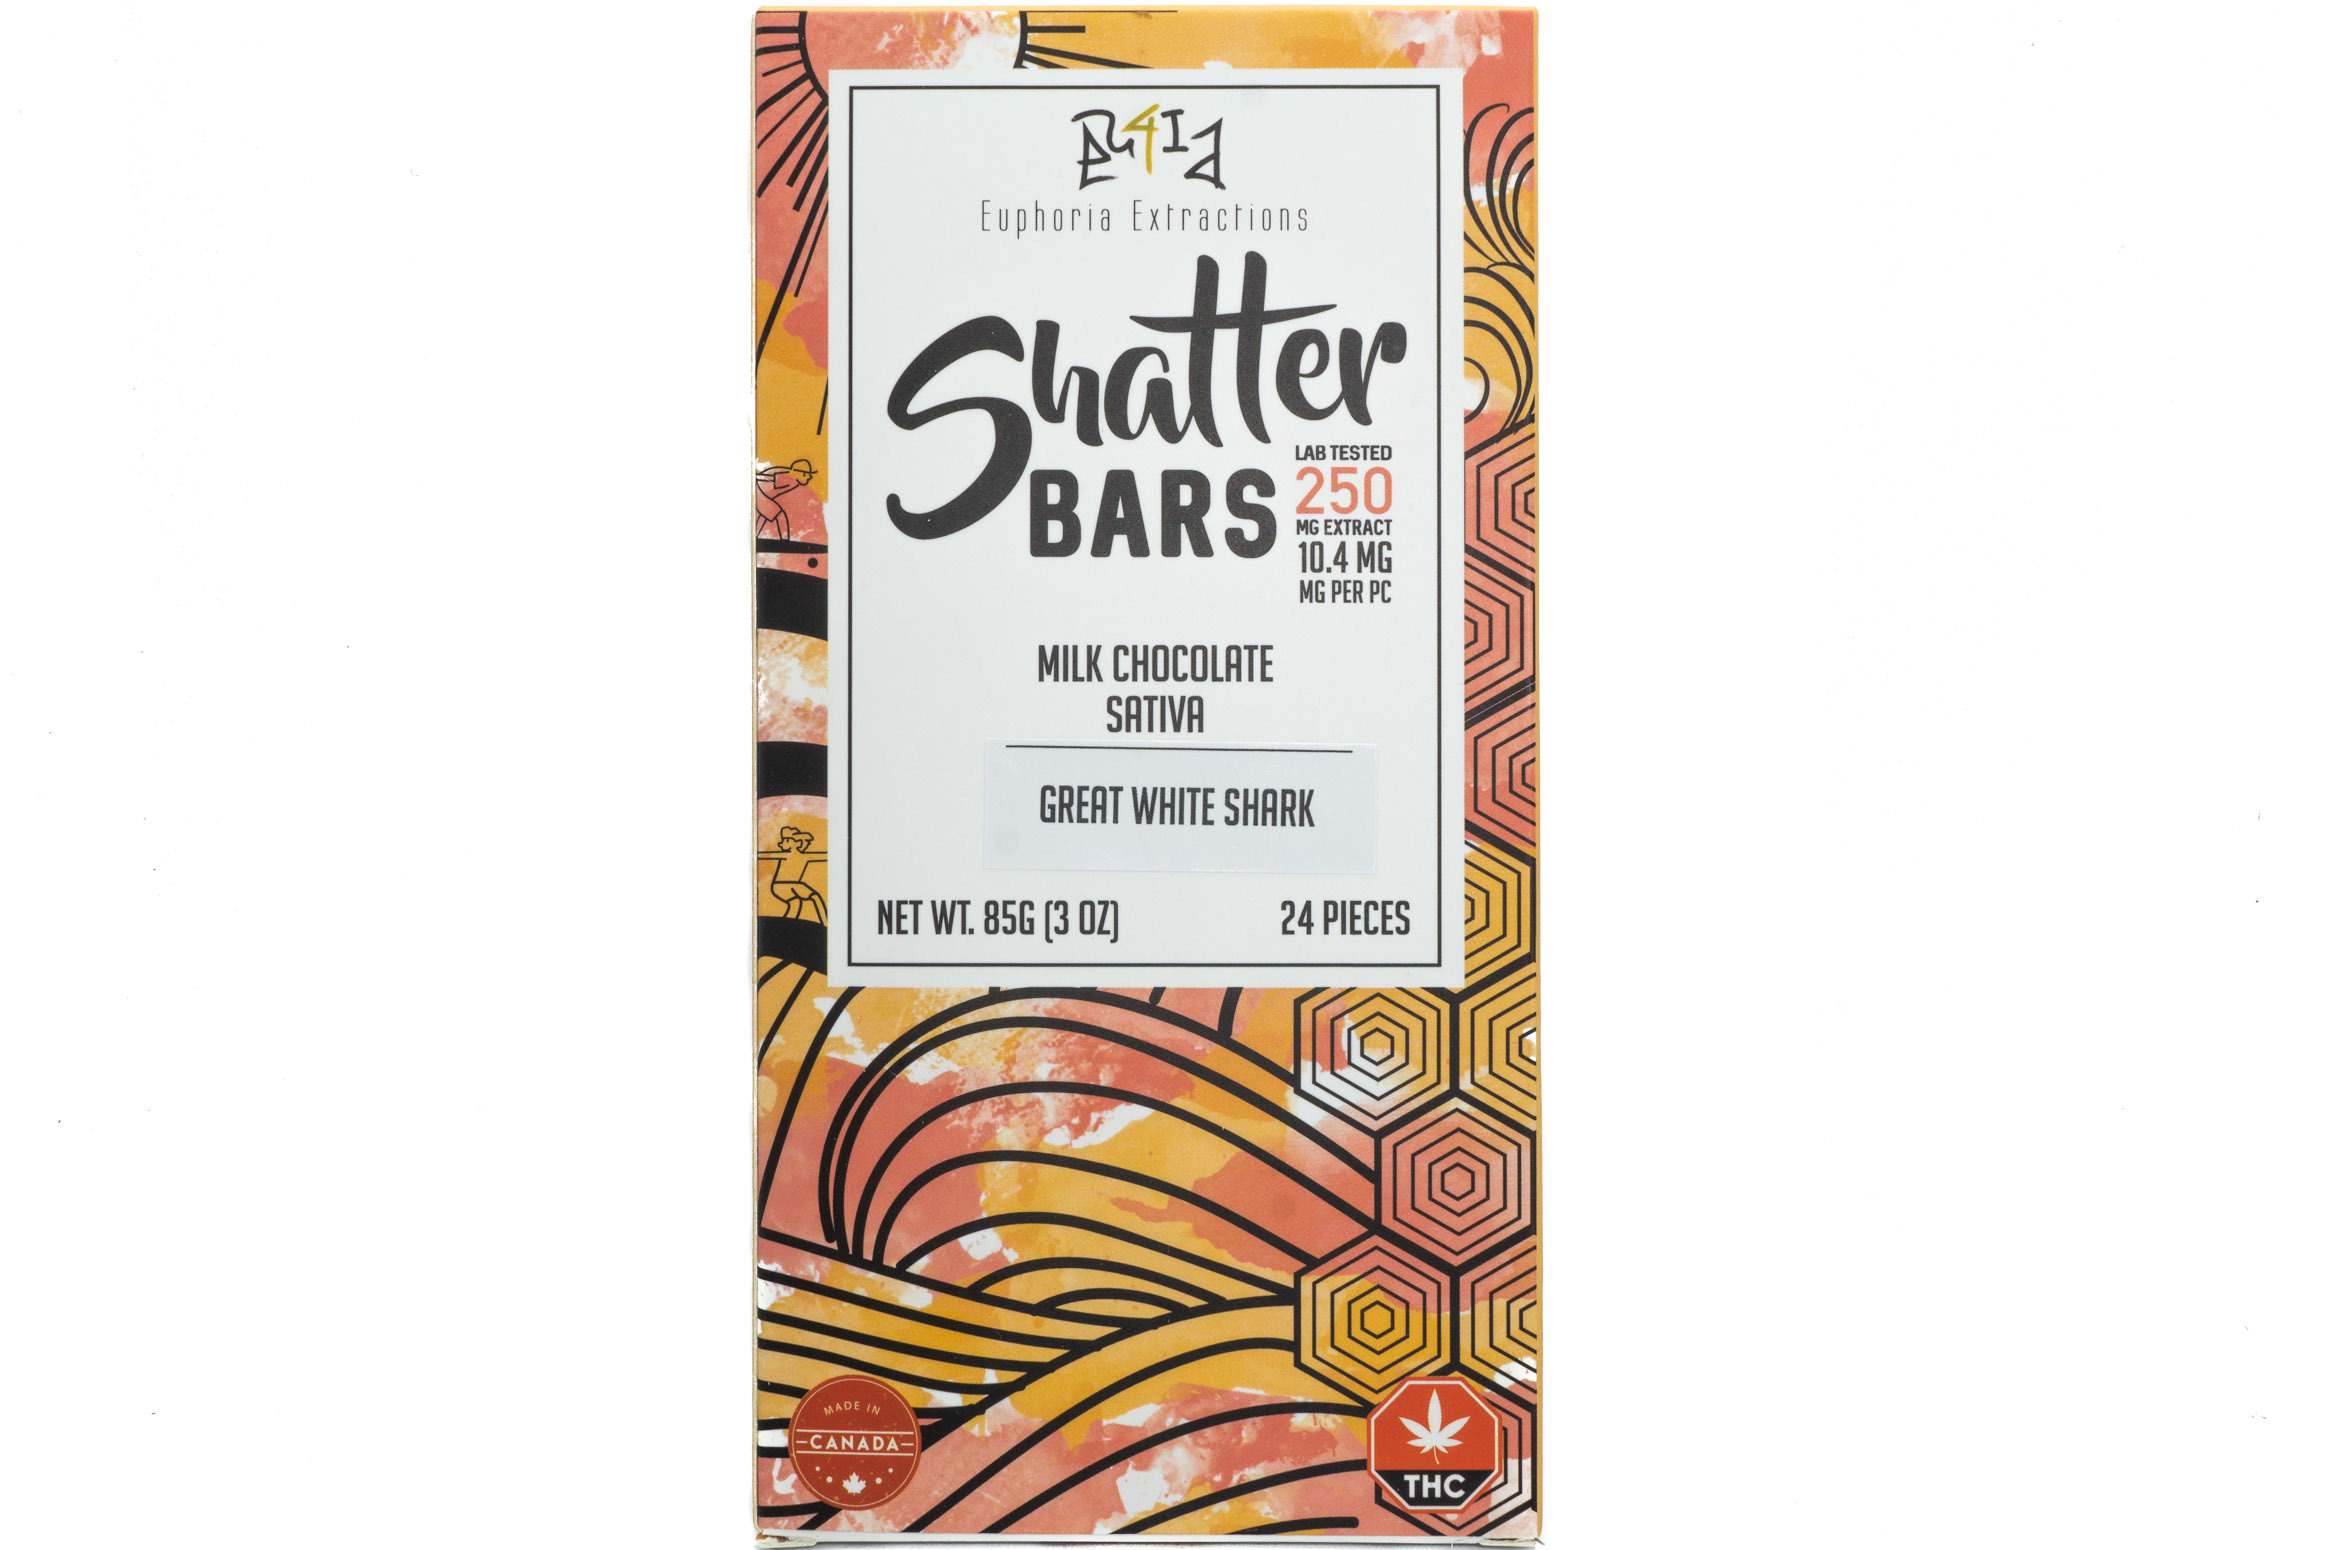 Milk Chocolate Sativa Shatter Bar By Euphoria Extractions (250mg) (Current Strain Great White Shark) 01274